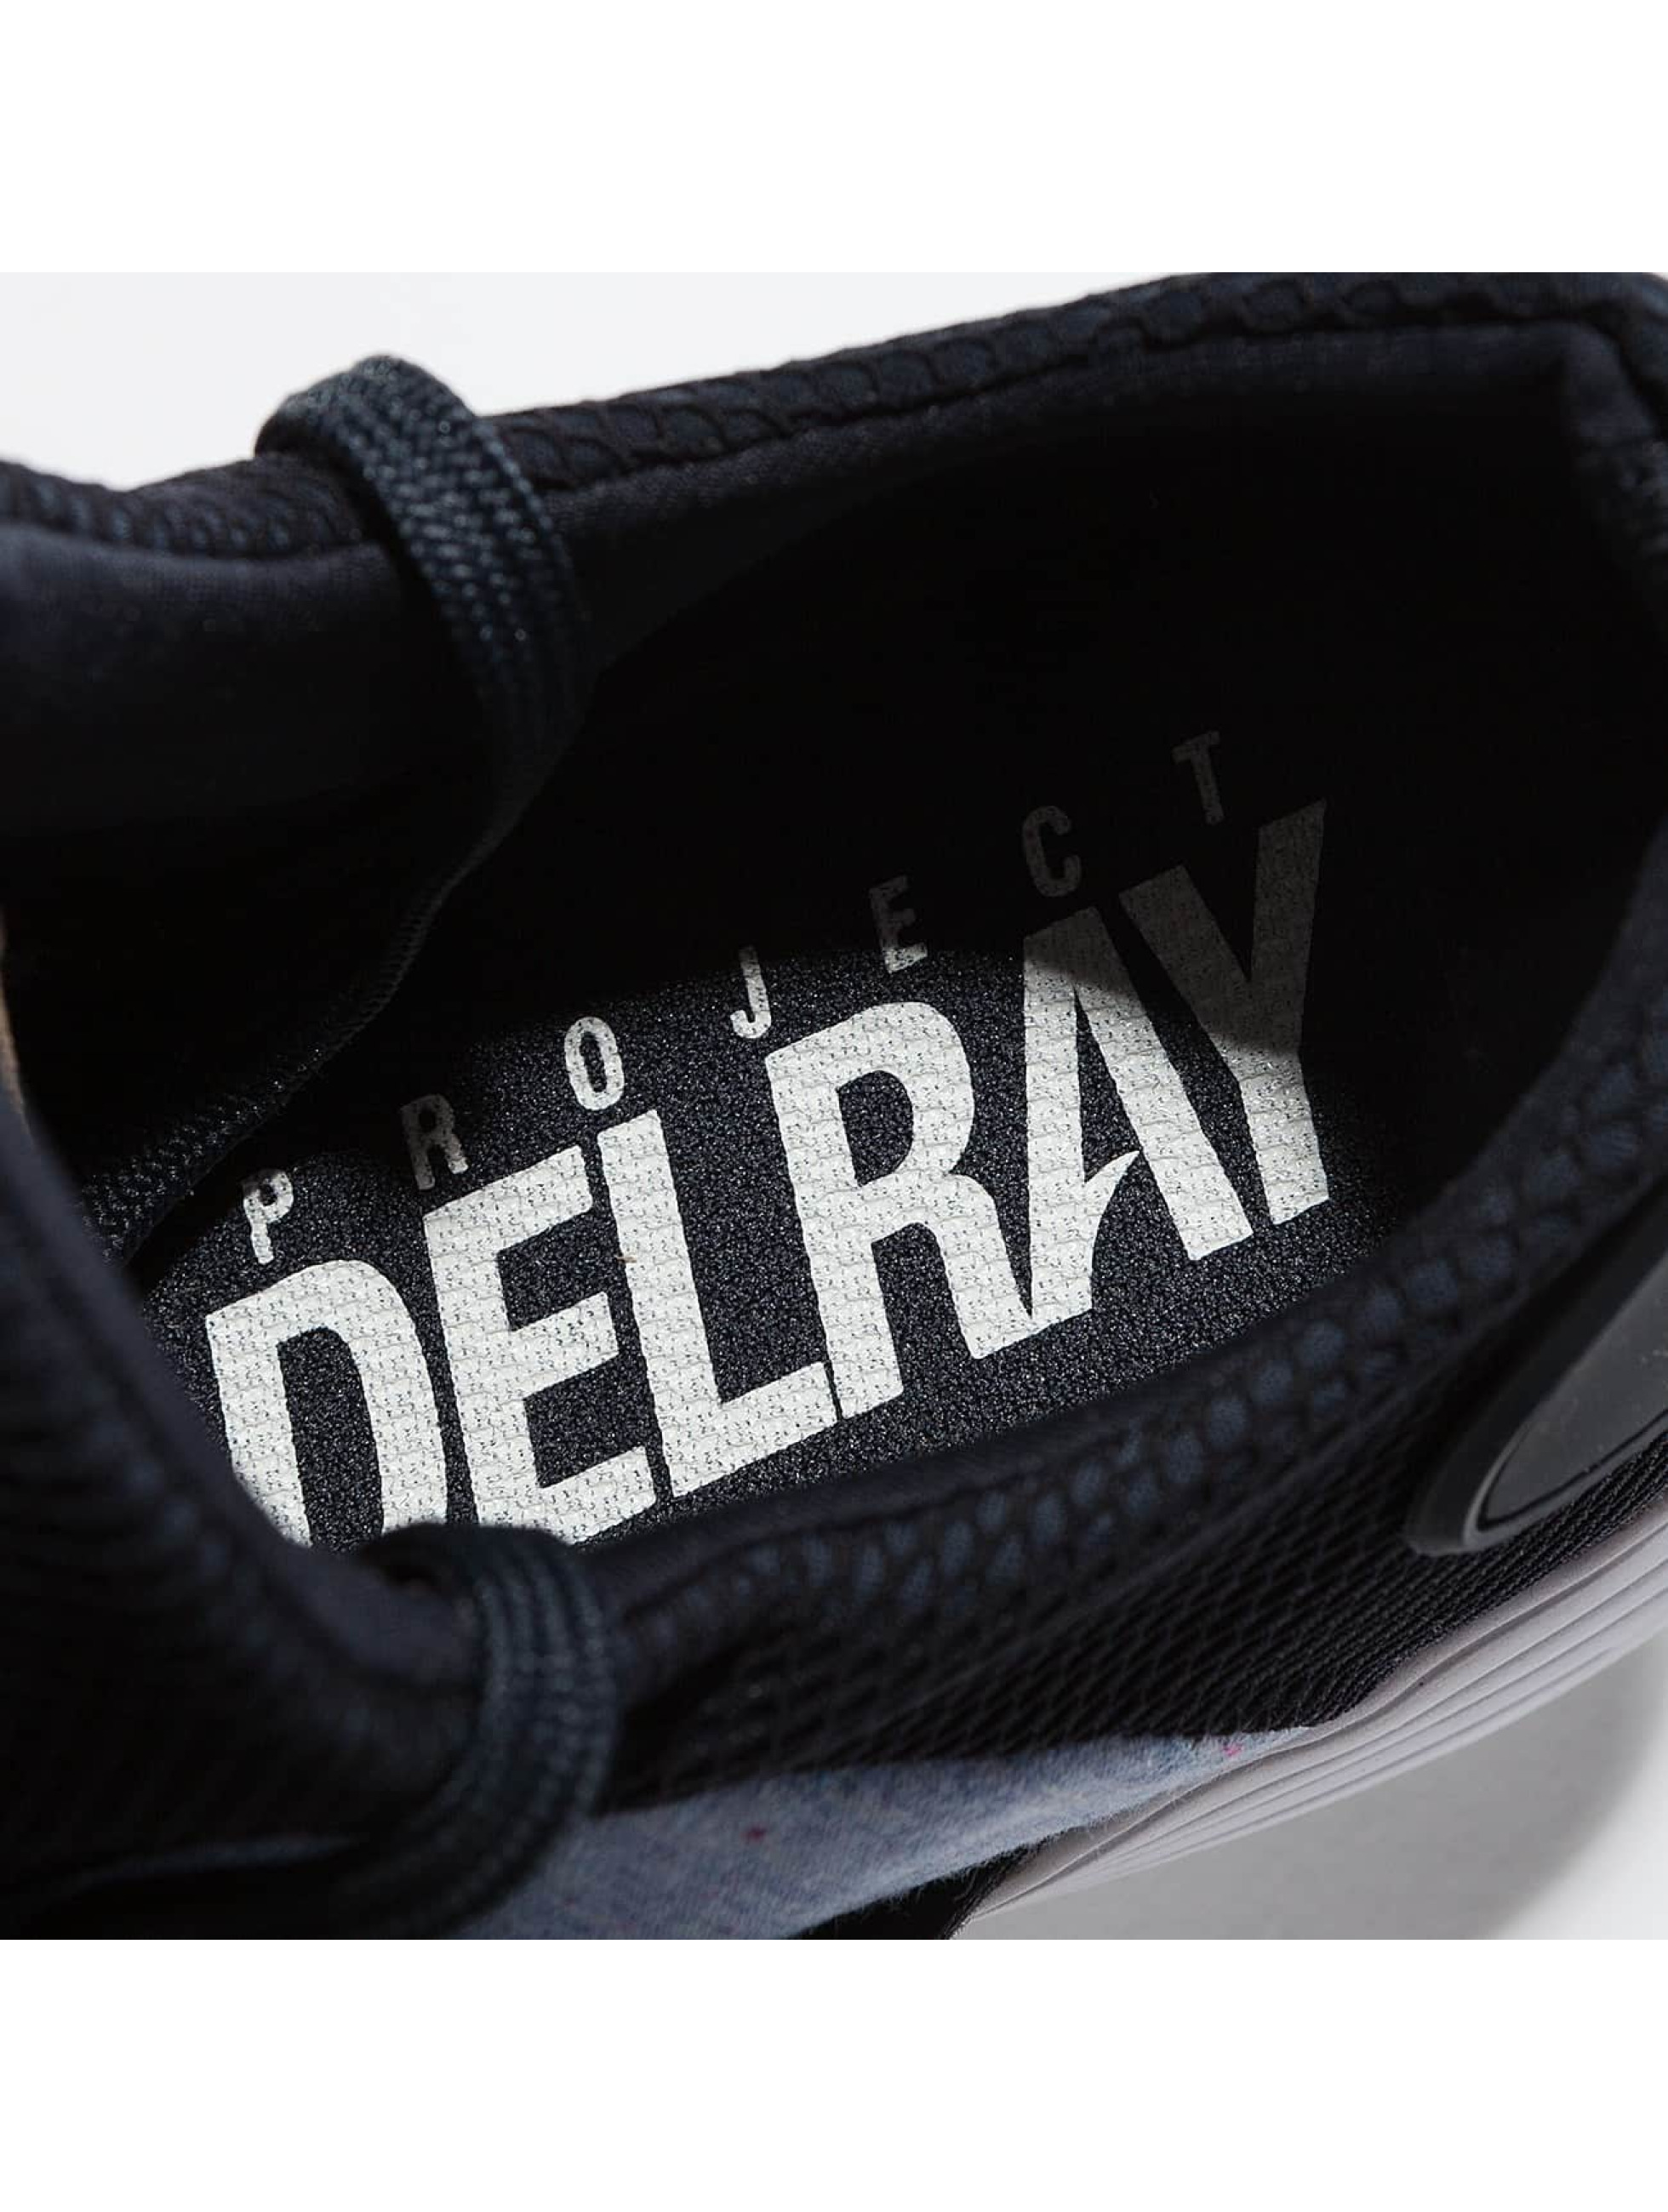 Project Delray Sneakers Wavey blue